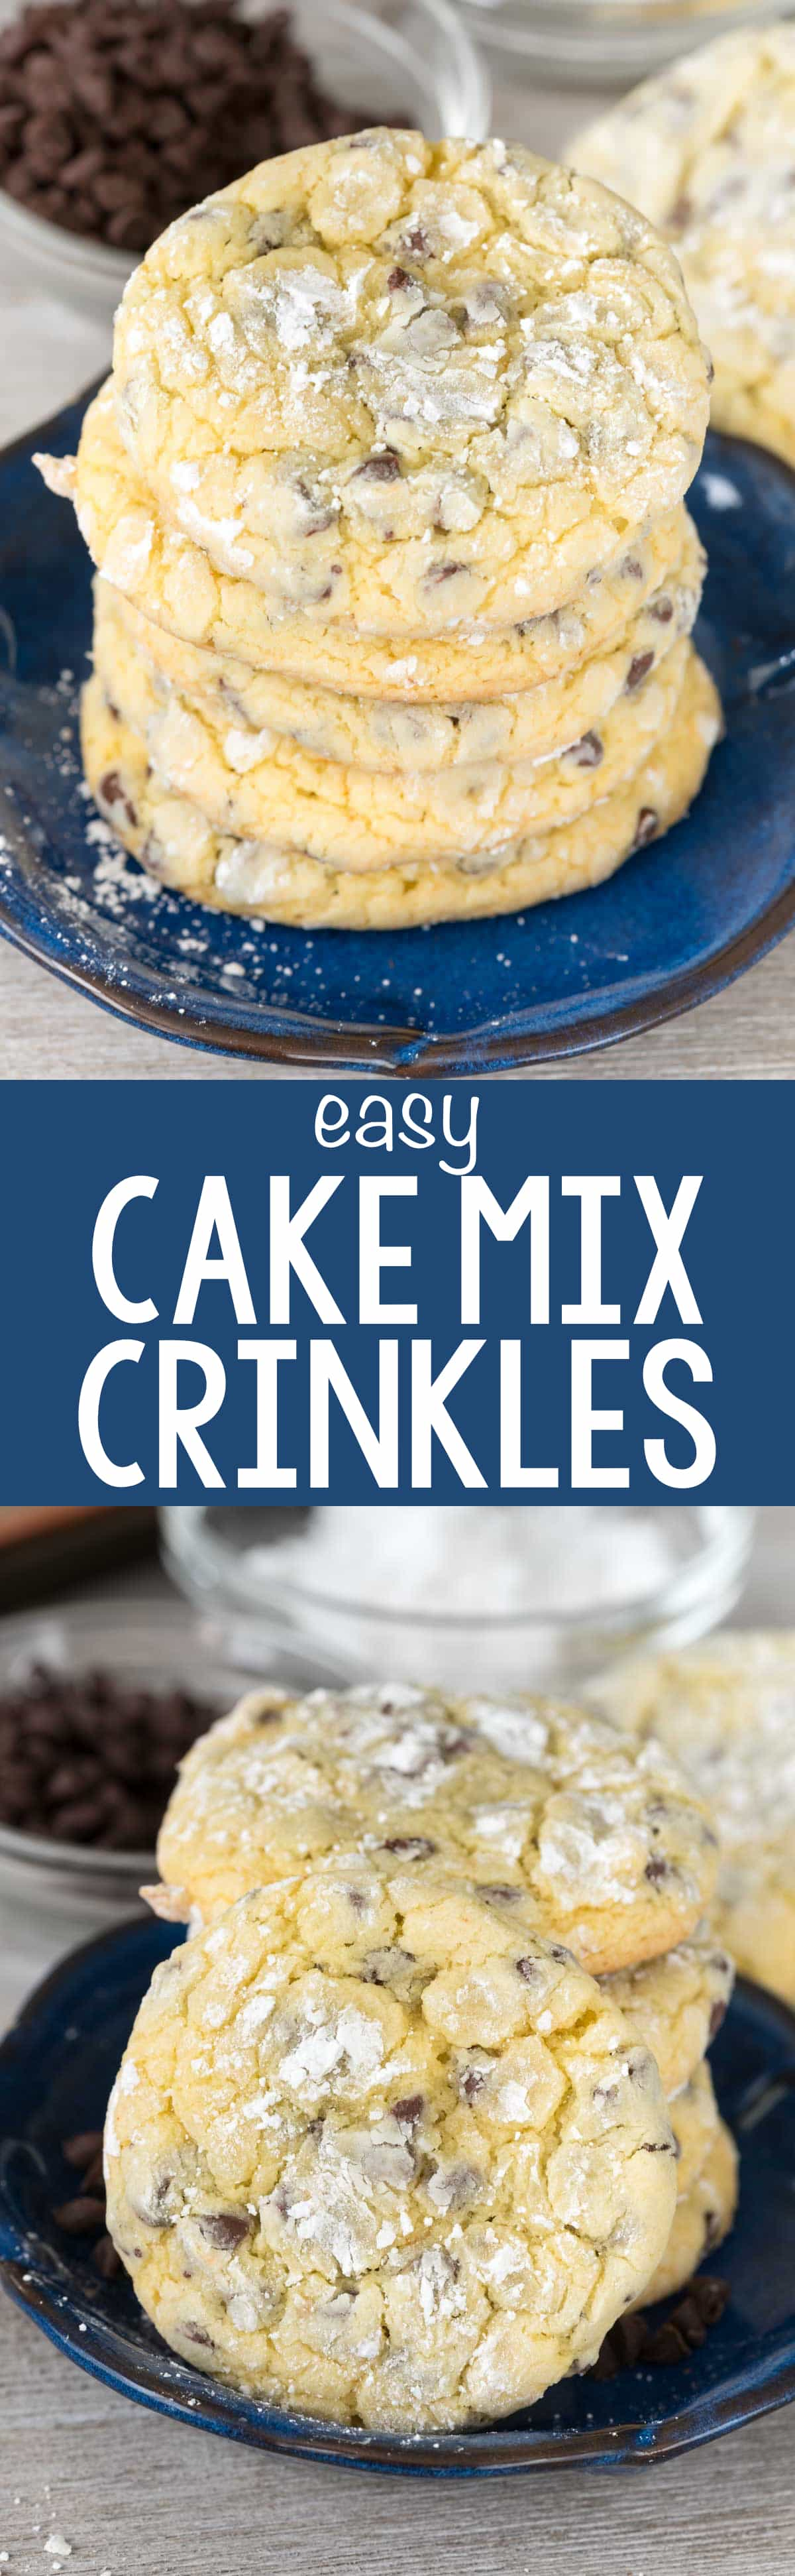 Easy Cake Mix Crinkle Cookies - this easy recipe combines cake mix cookies with an easy crinkle cookie recipe! No one will guess they're from a cake mix.